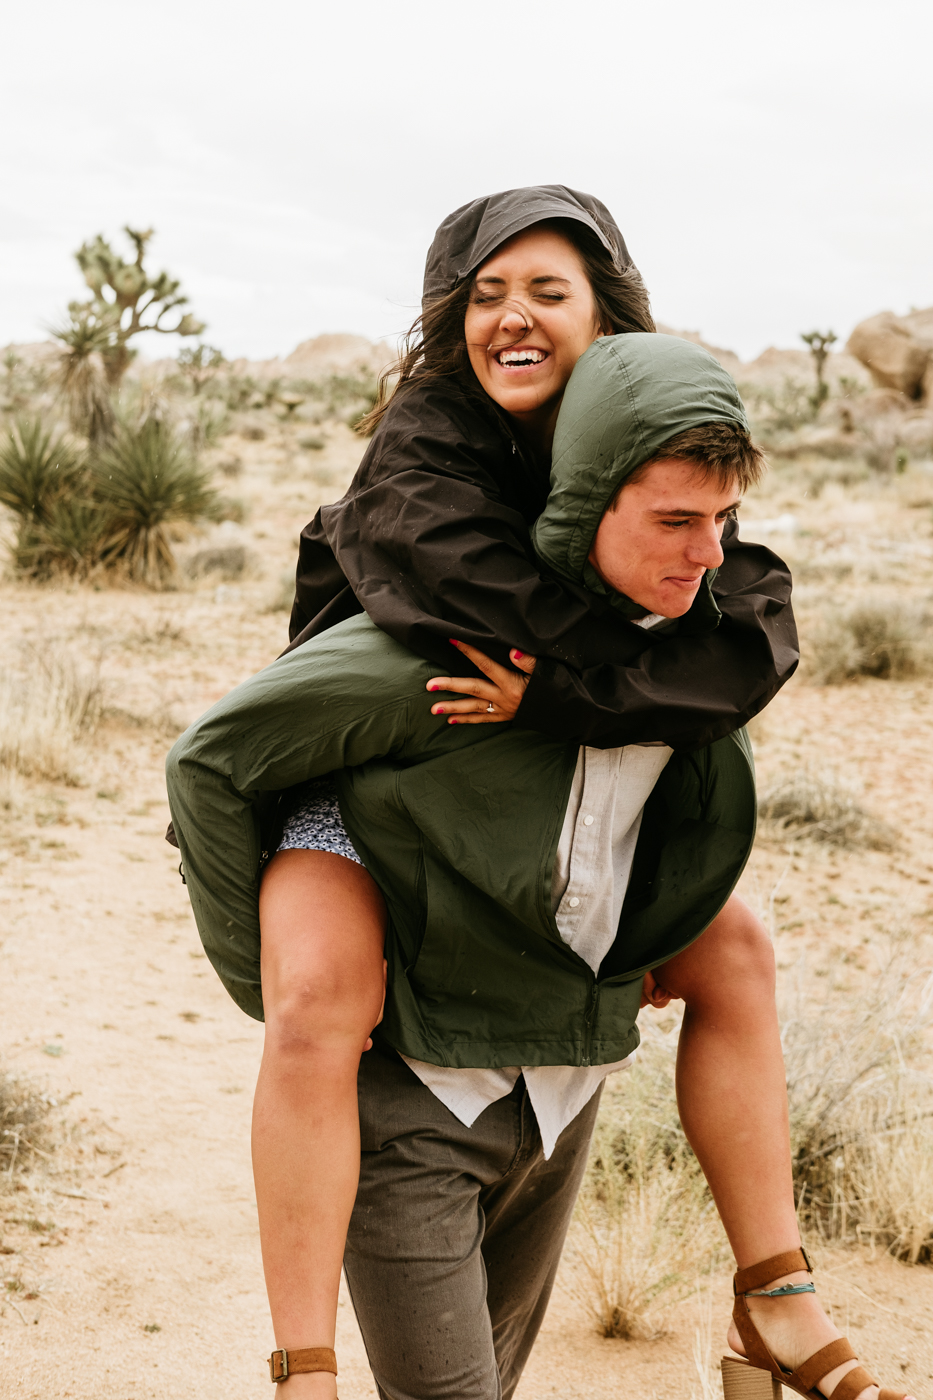 Baliey+Thomas.Engagement.JoshuaTree©mileswittboyer.com2018-24.jpg